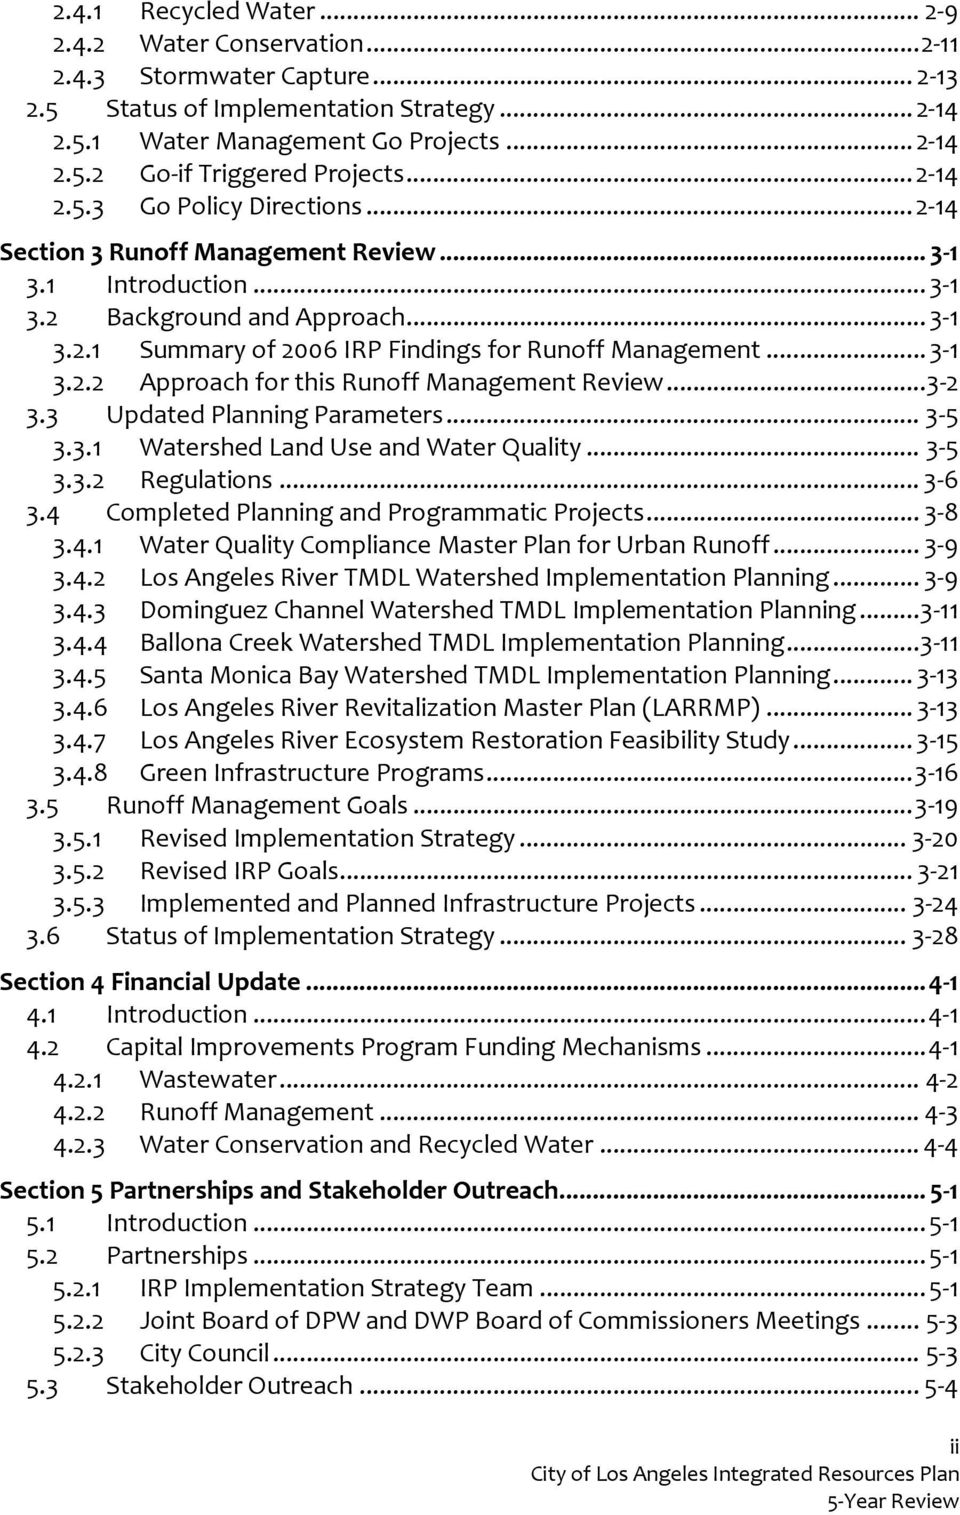 ..3 1 3.2.2 Approach for this Runoff Management Review...3 2 3.3 Updated Planning Parameters... 3 5 3.3.1 Watershed Land Use and Water Quality... 3 5 3.3.2 Regulations... 3 6 3.